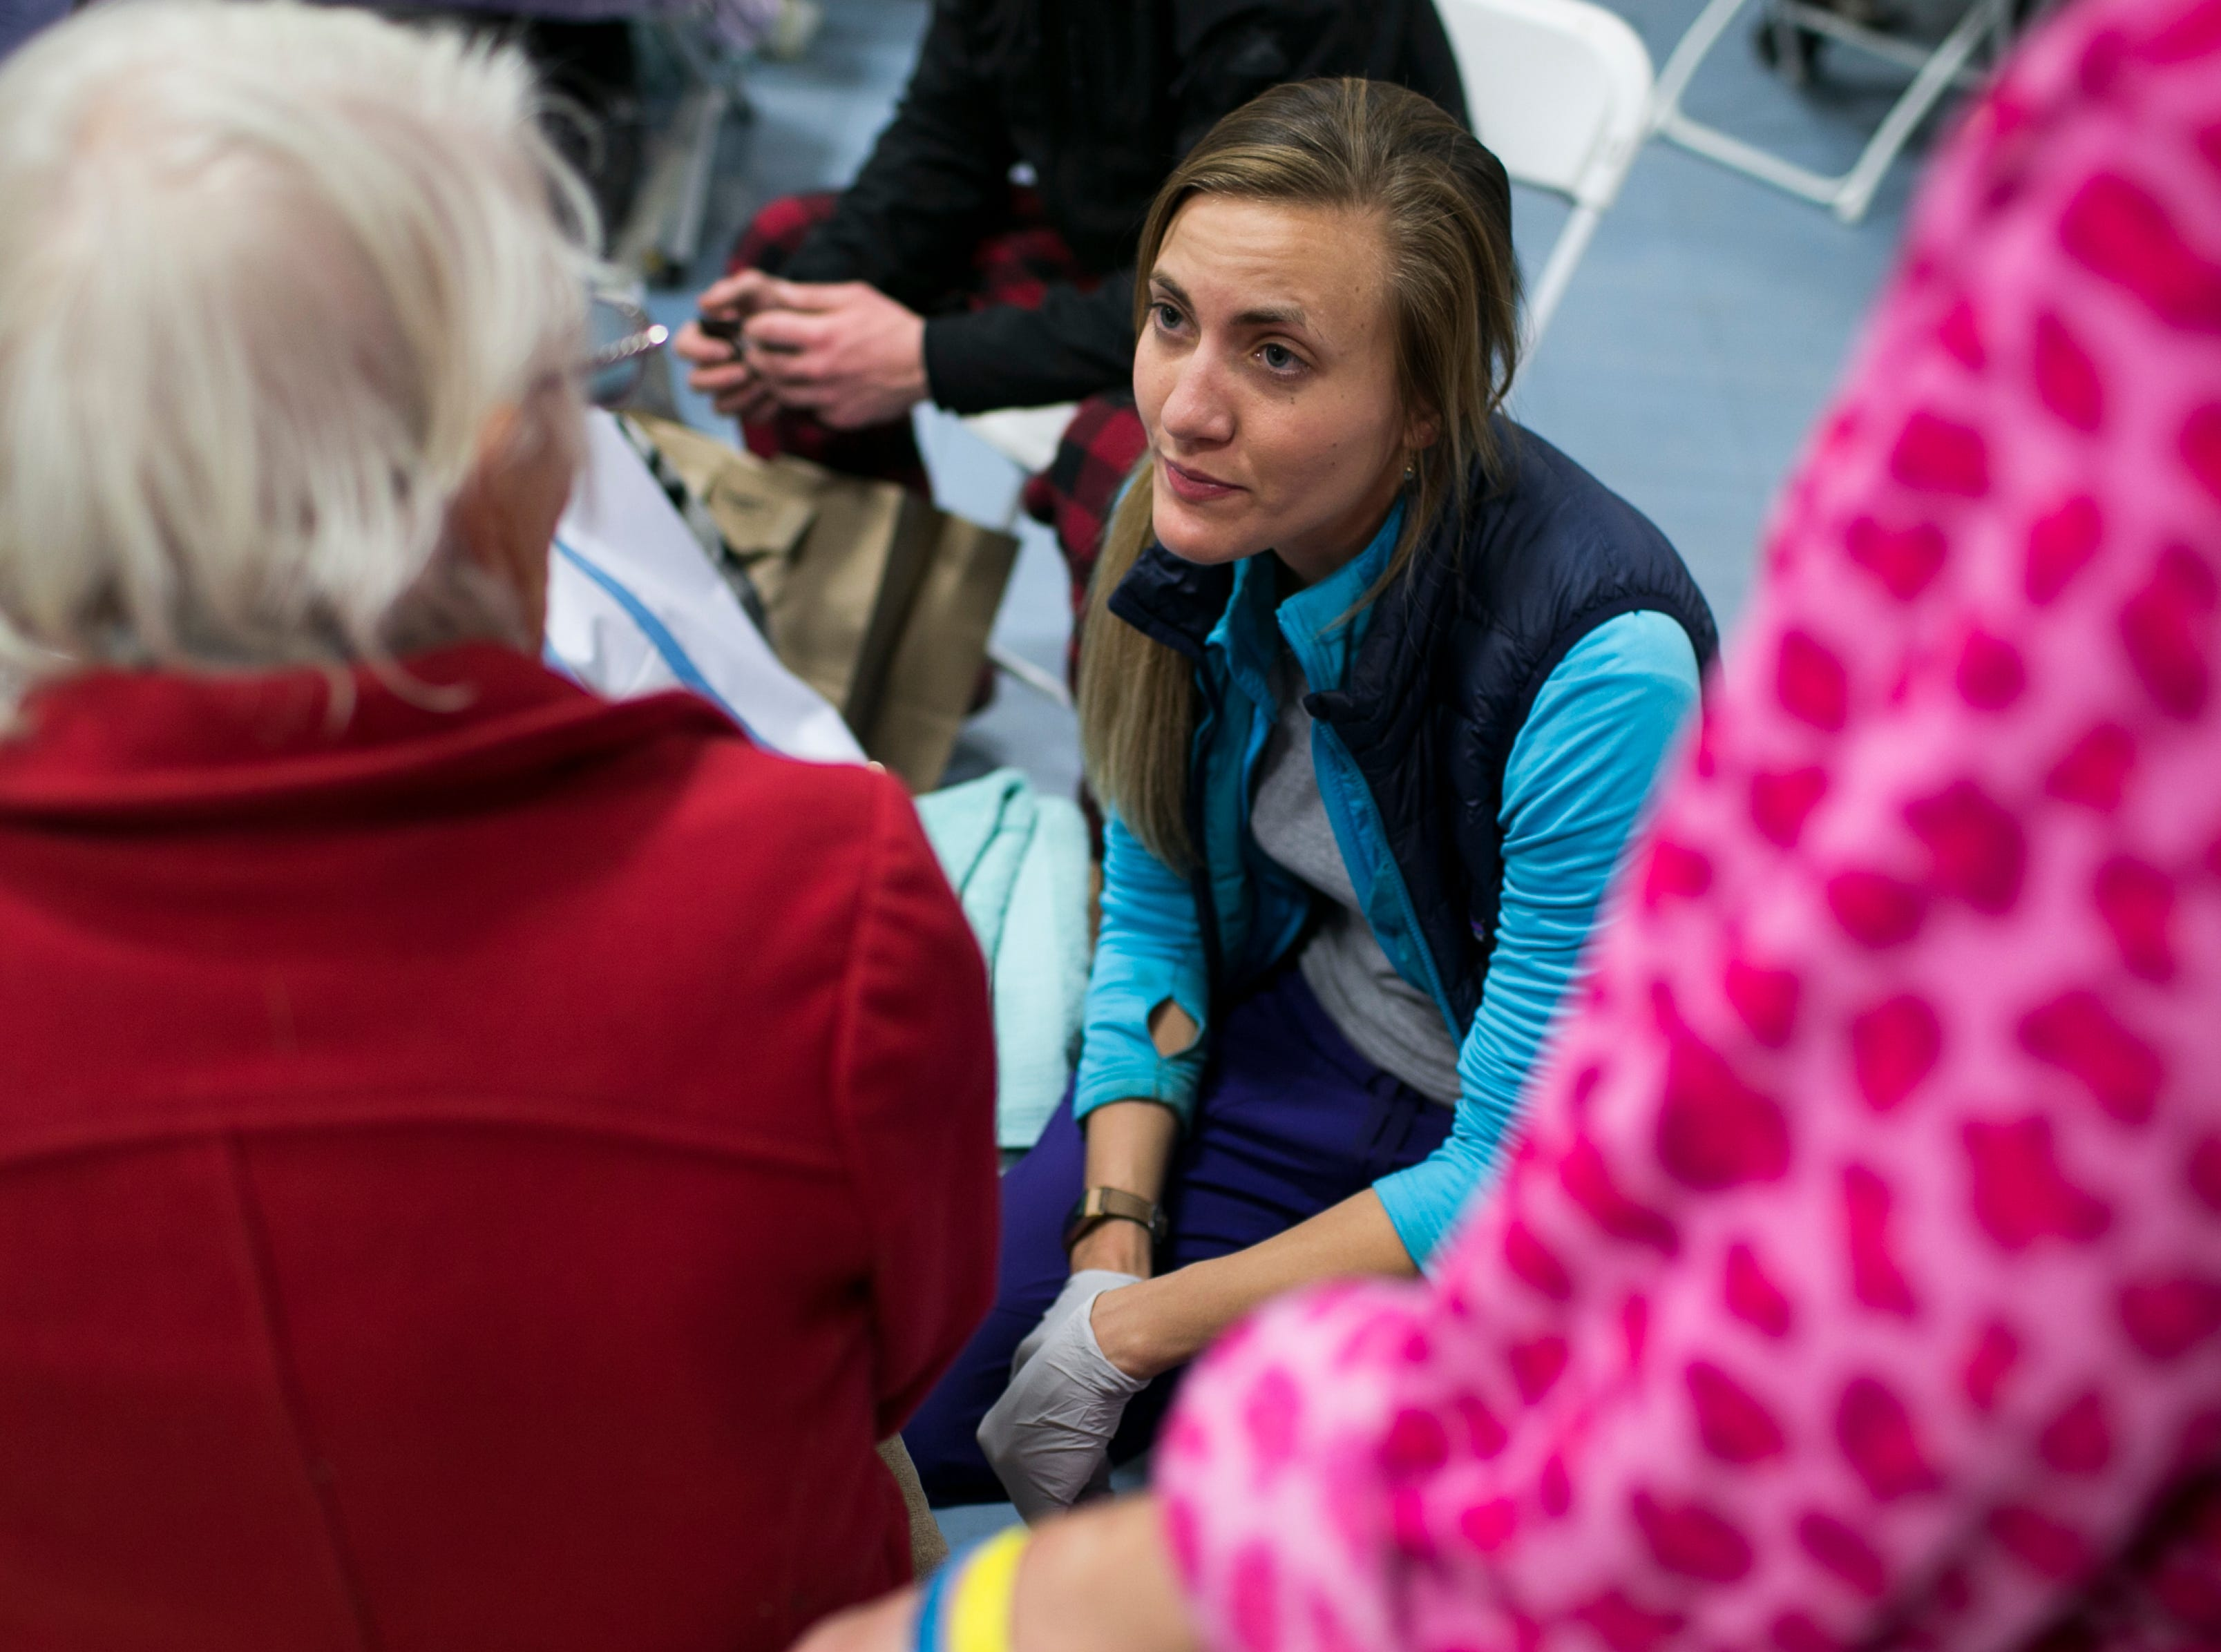 ER nurse Birgitte Randall (center)  speaks with an evacuee of the Paradise fire at the East Avenue Church Shelter in Chico, California on November 17, 2018. Randall fled her burning hospital Feather River in Paradise as the Camp Fire burned through town, eventually destroying her home. Responding to a Facebook request for help at the East Avenue Shelter, Randall and several of her colleagues and friends quickly sprung to action, starting a pop up clinic at the shelter to aid evacuees in need of medical attention.